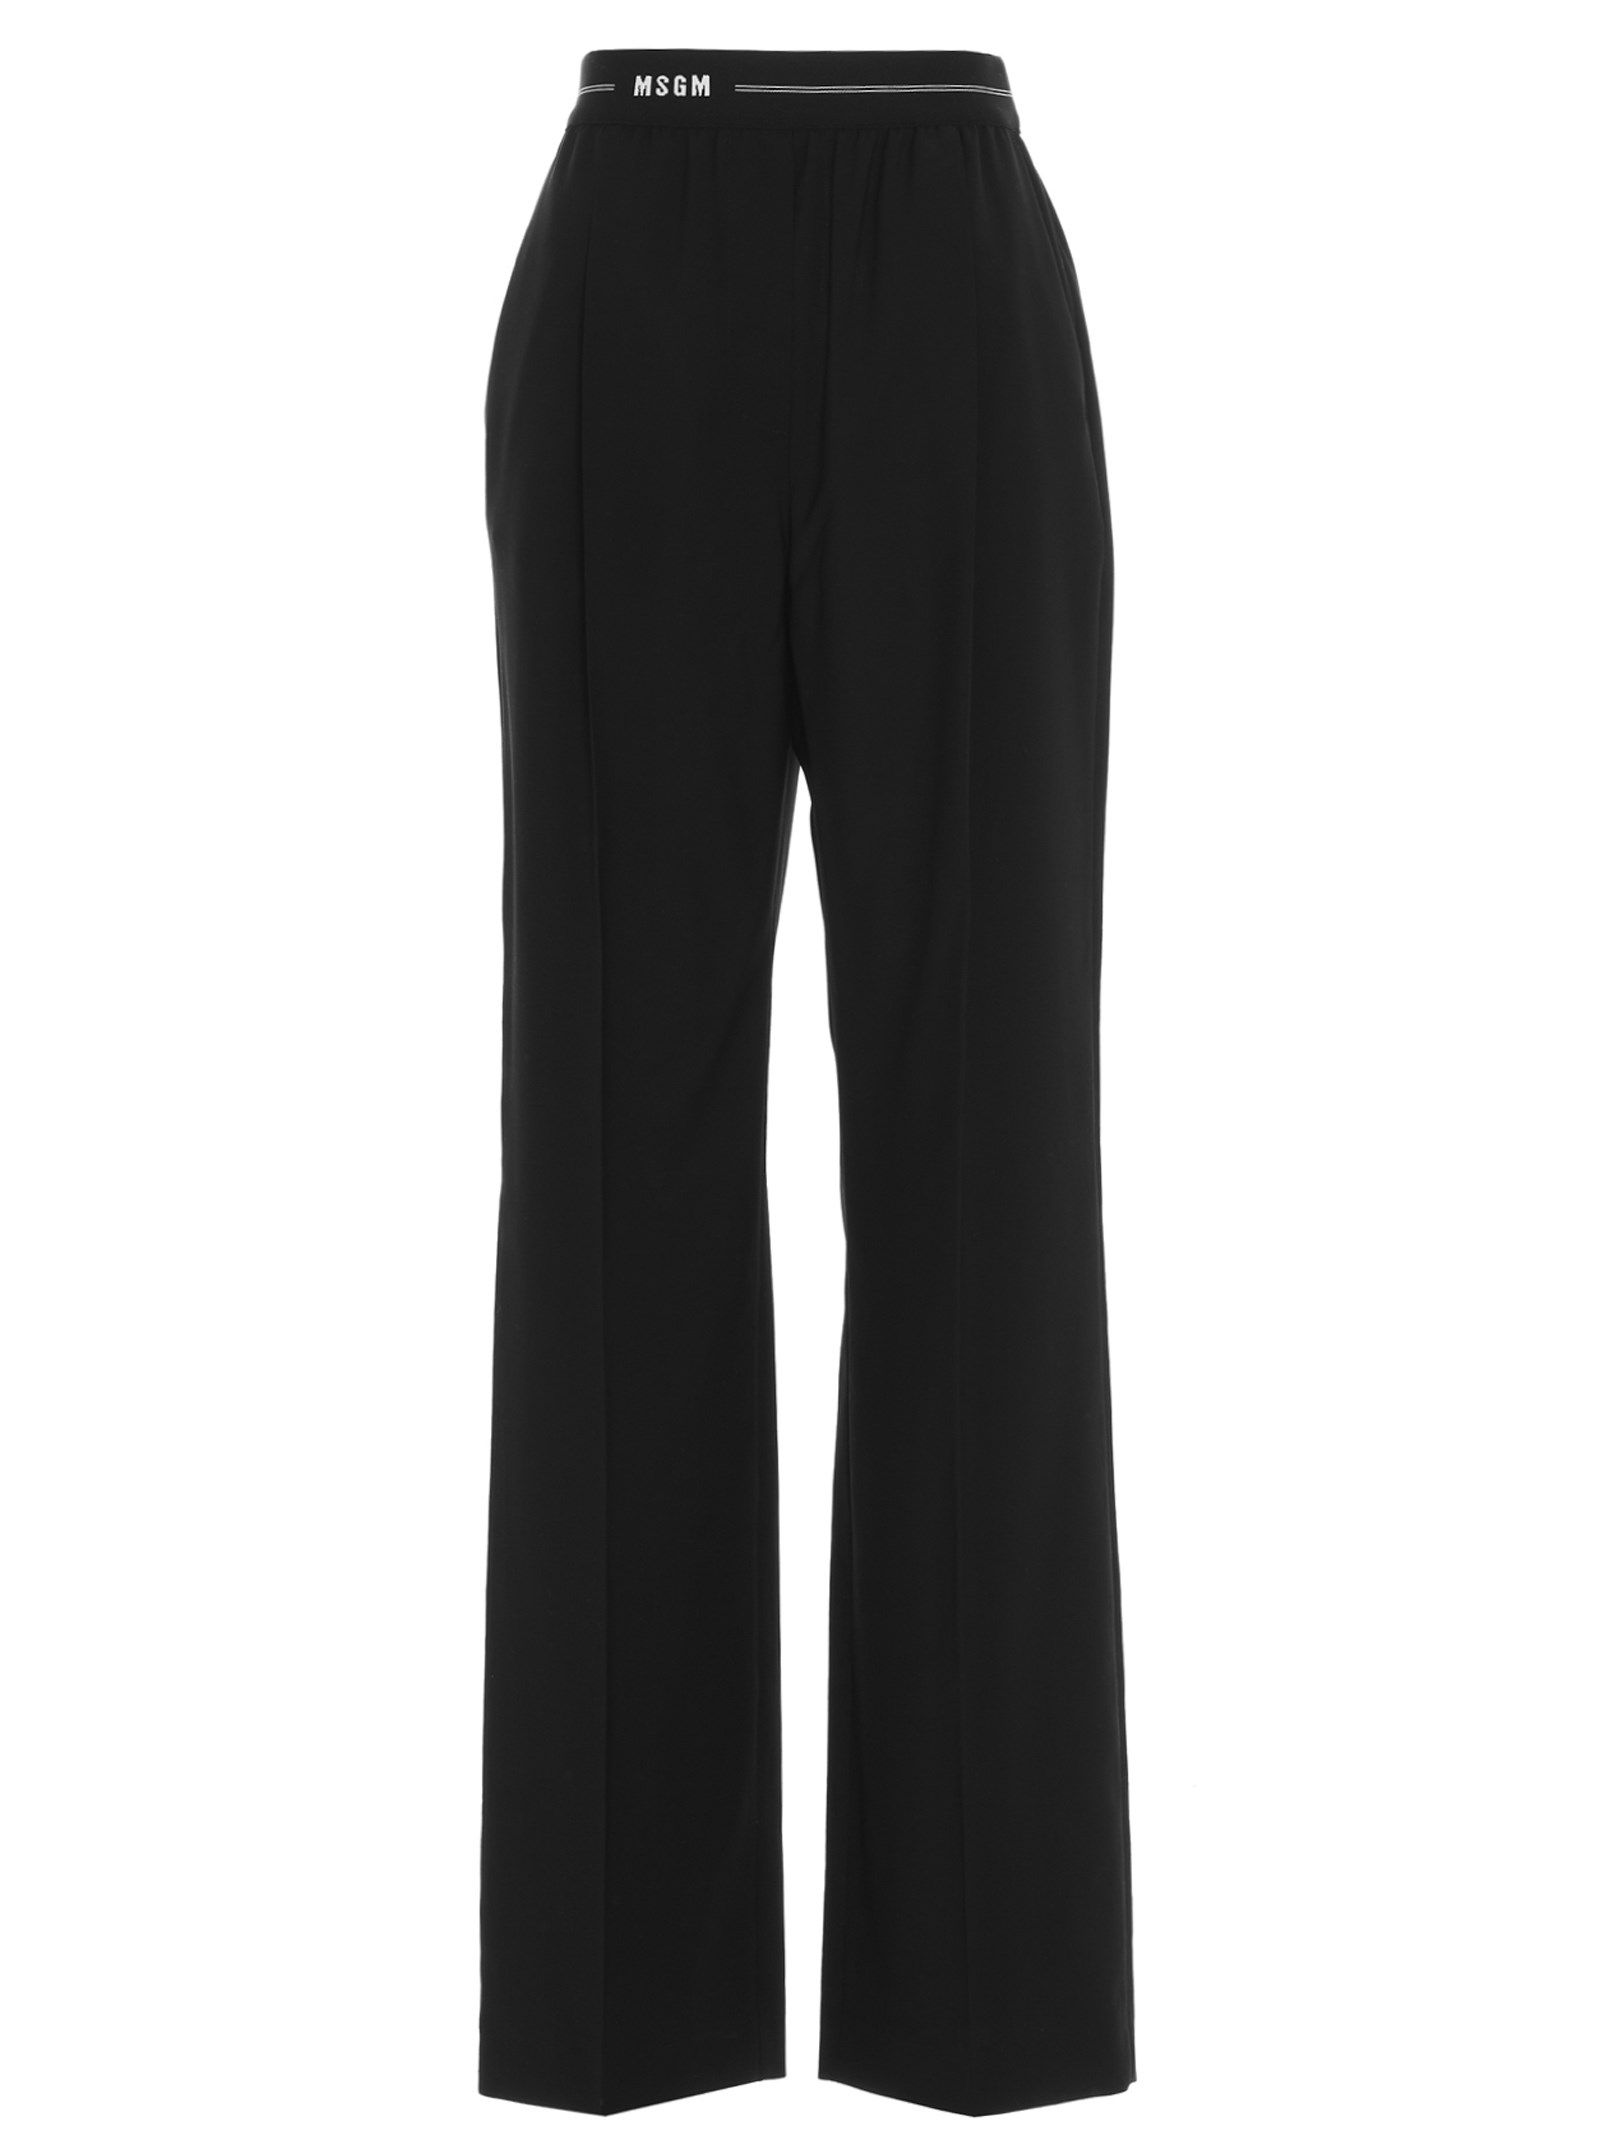 Msgm Pants WOMEN'S 3041MDP1221711399 BLACK OTHER MATERIALS PANTS